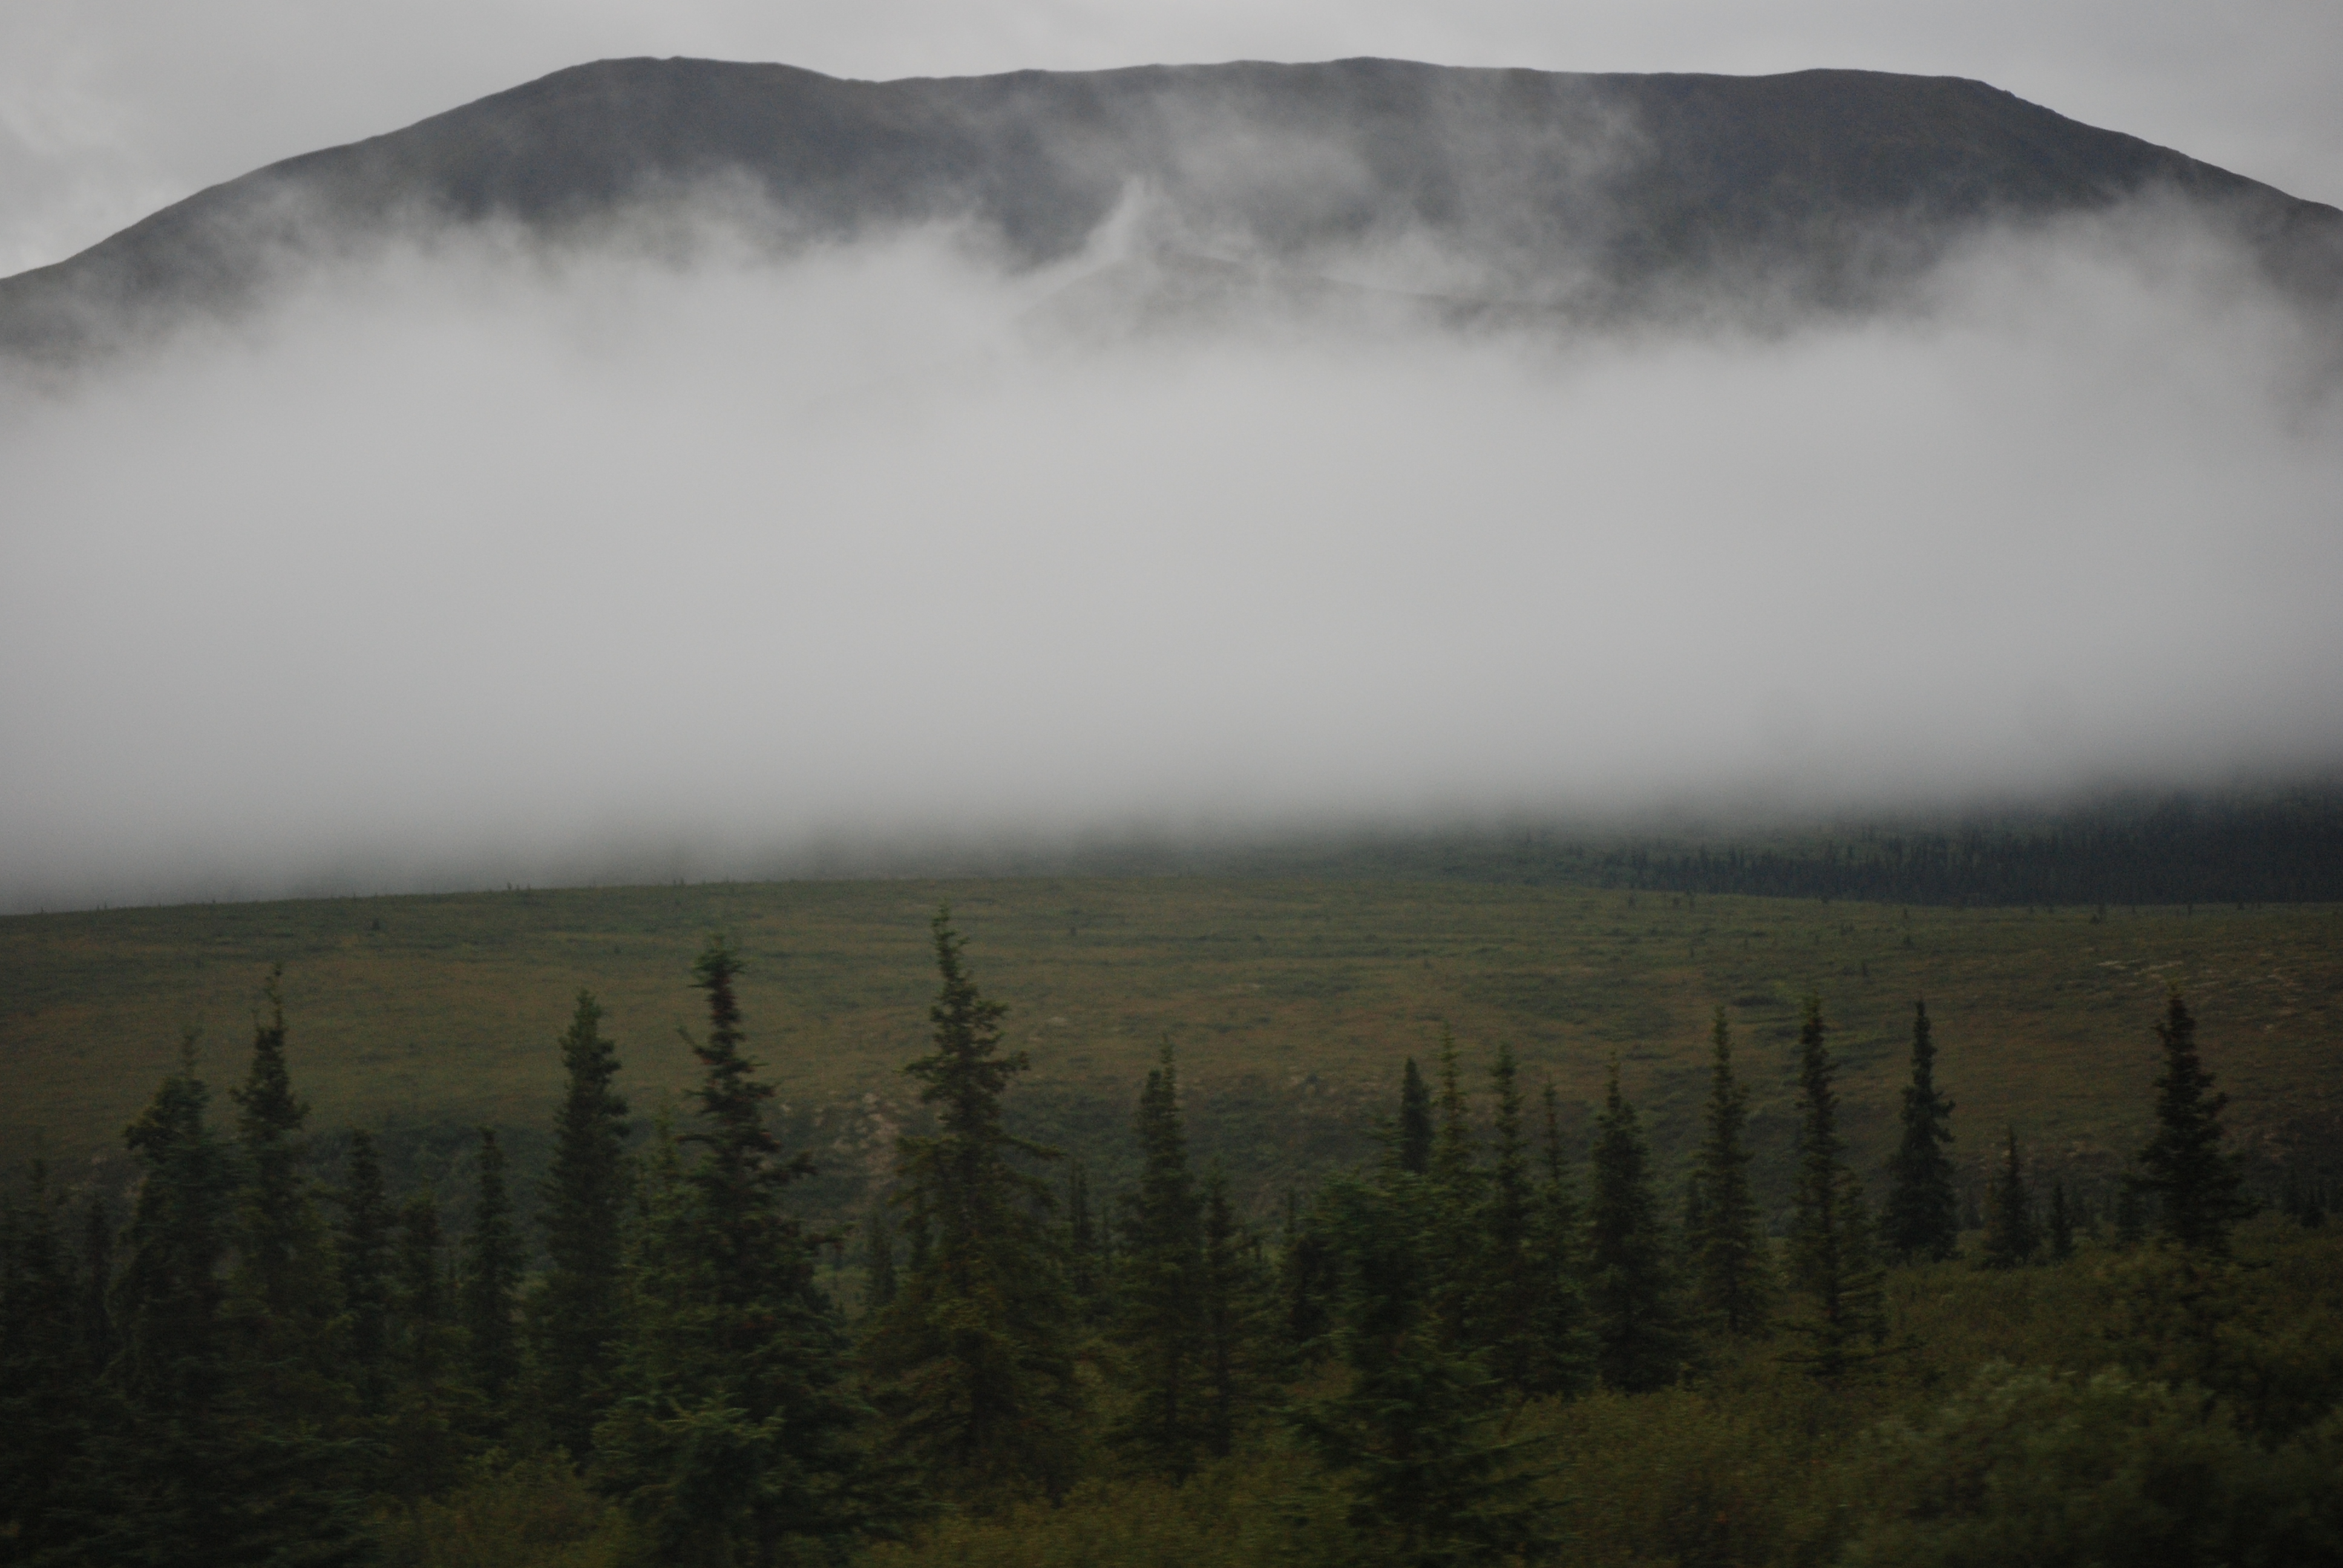 File:Denali Park - early morning fog.jpg - Wikimedia Commons